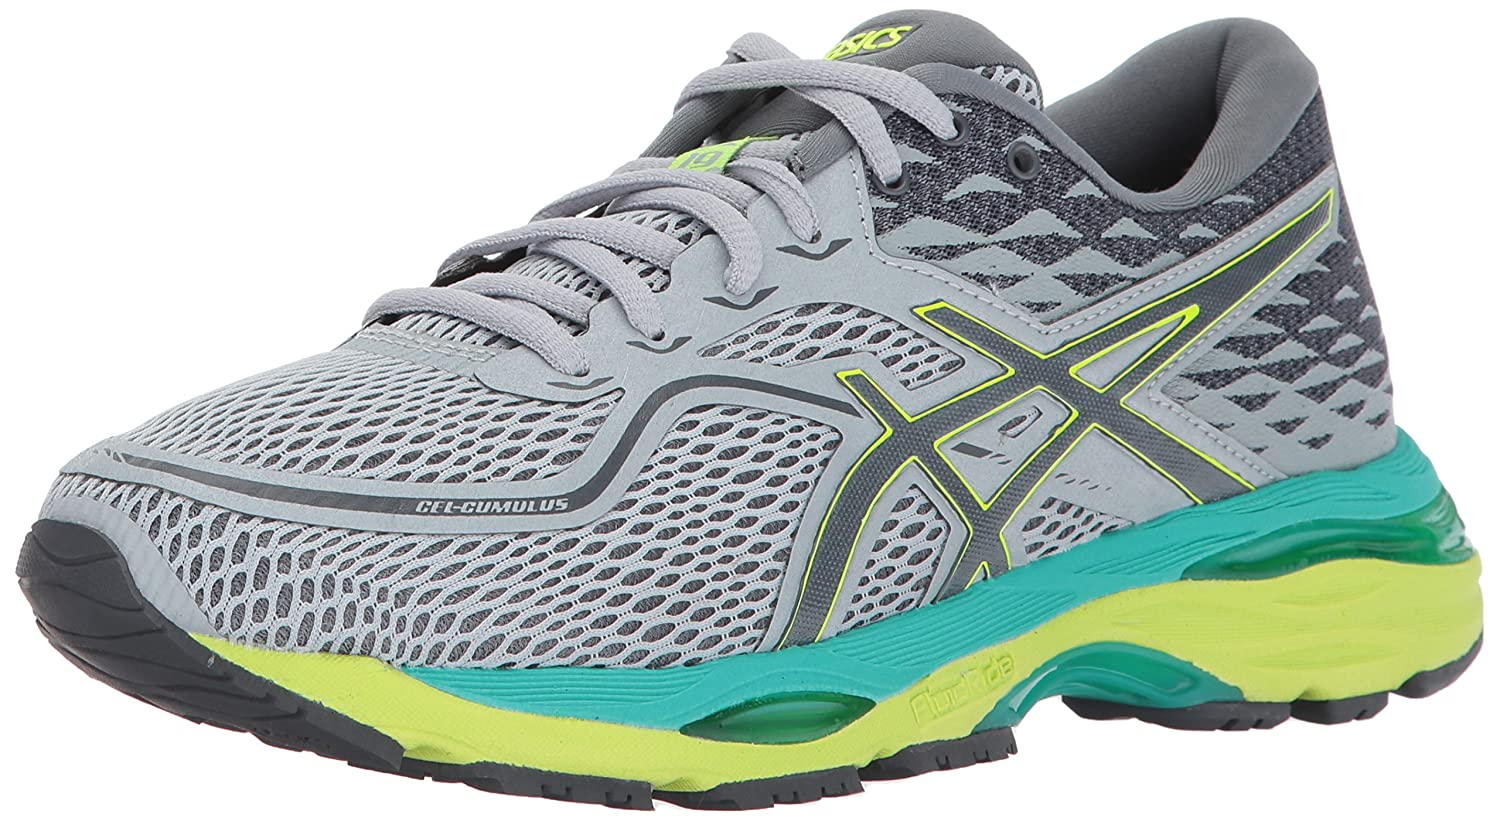 Mid Grey   Carbon   Safety Yellow ASICS Women's Gel-Cumulus 19 Running-shoes